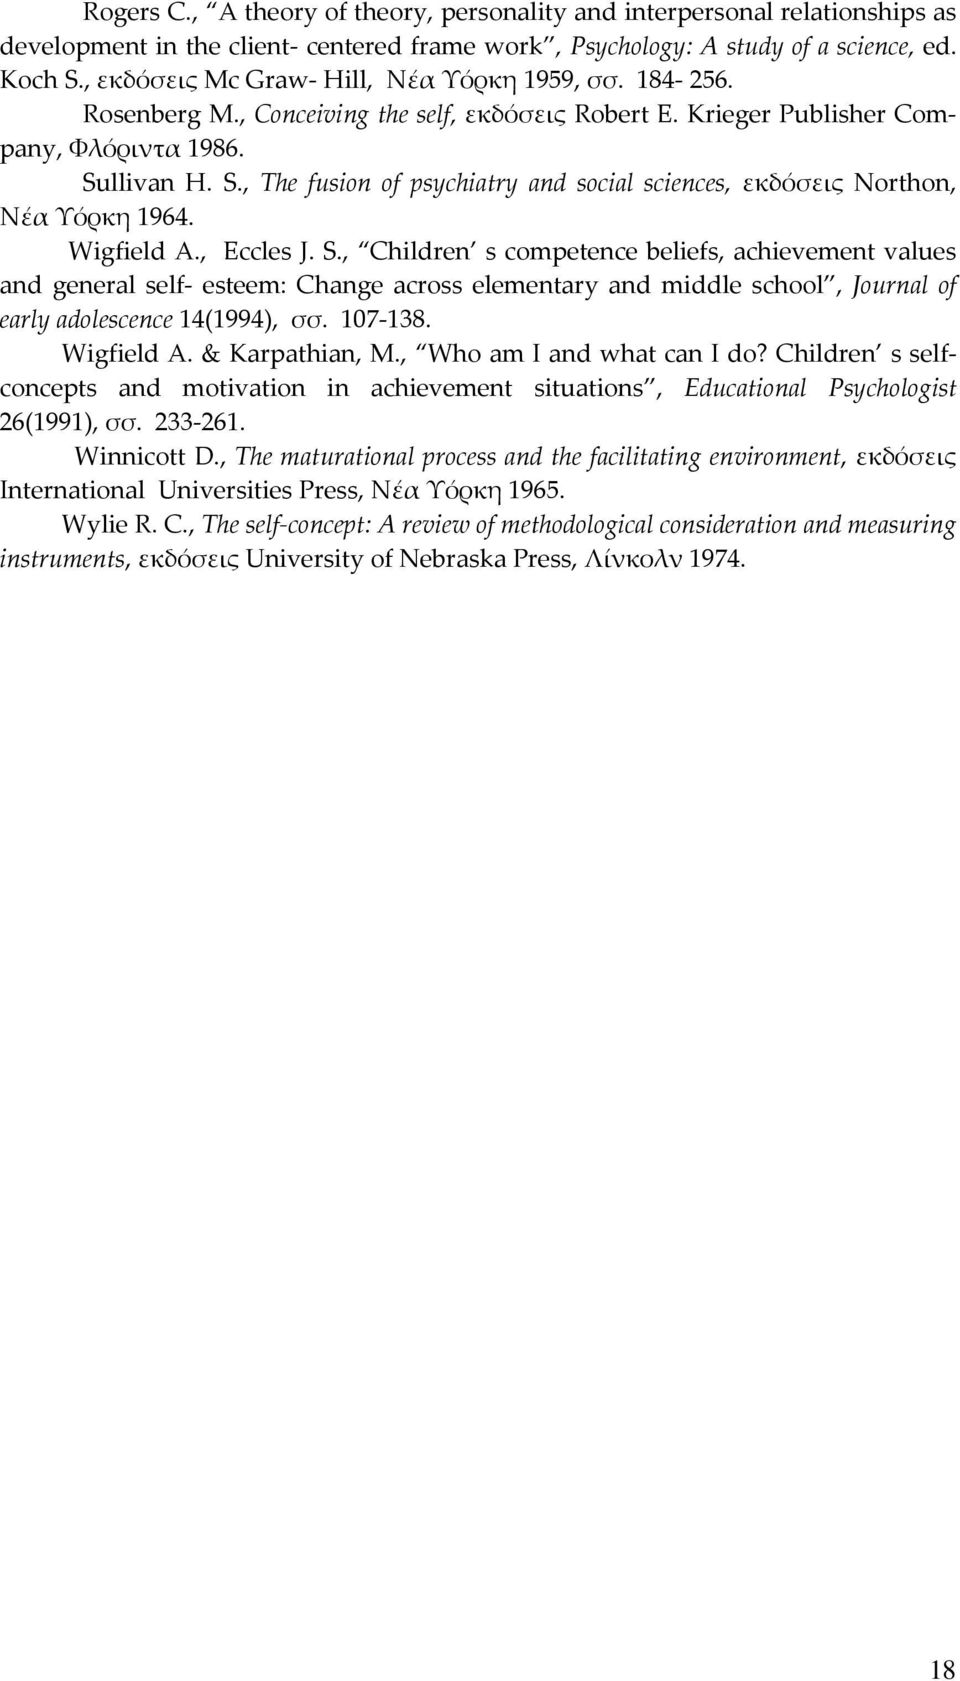 llivan H. S., The fusion of psychiatry and social sciences, εκδόσεις Northon, Νέα Υόρκη 1964. Wigfield A., Eccles J. S., Children s competence beliefs, achievement values and general self- esteem: Change across elementary and middle school, Journal of early adolescence 14(1994), σσ.